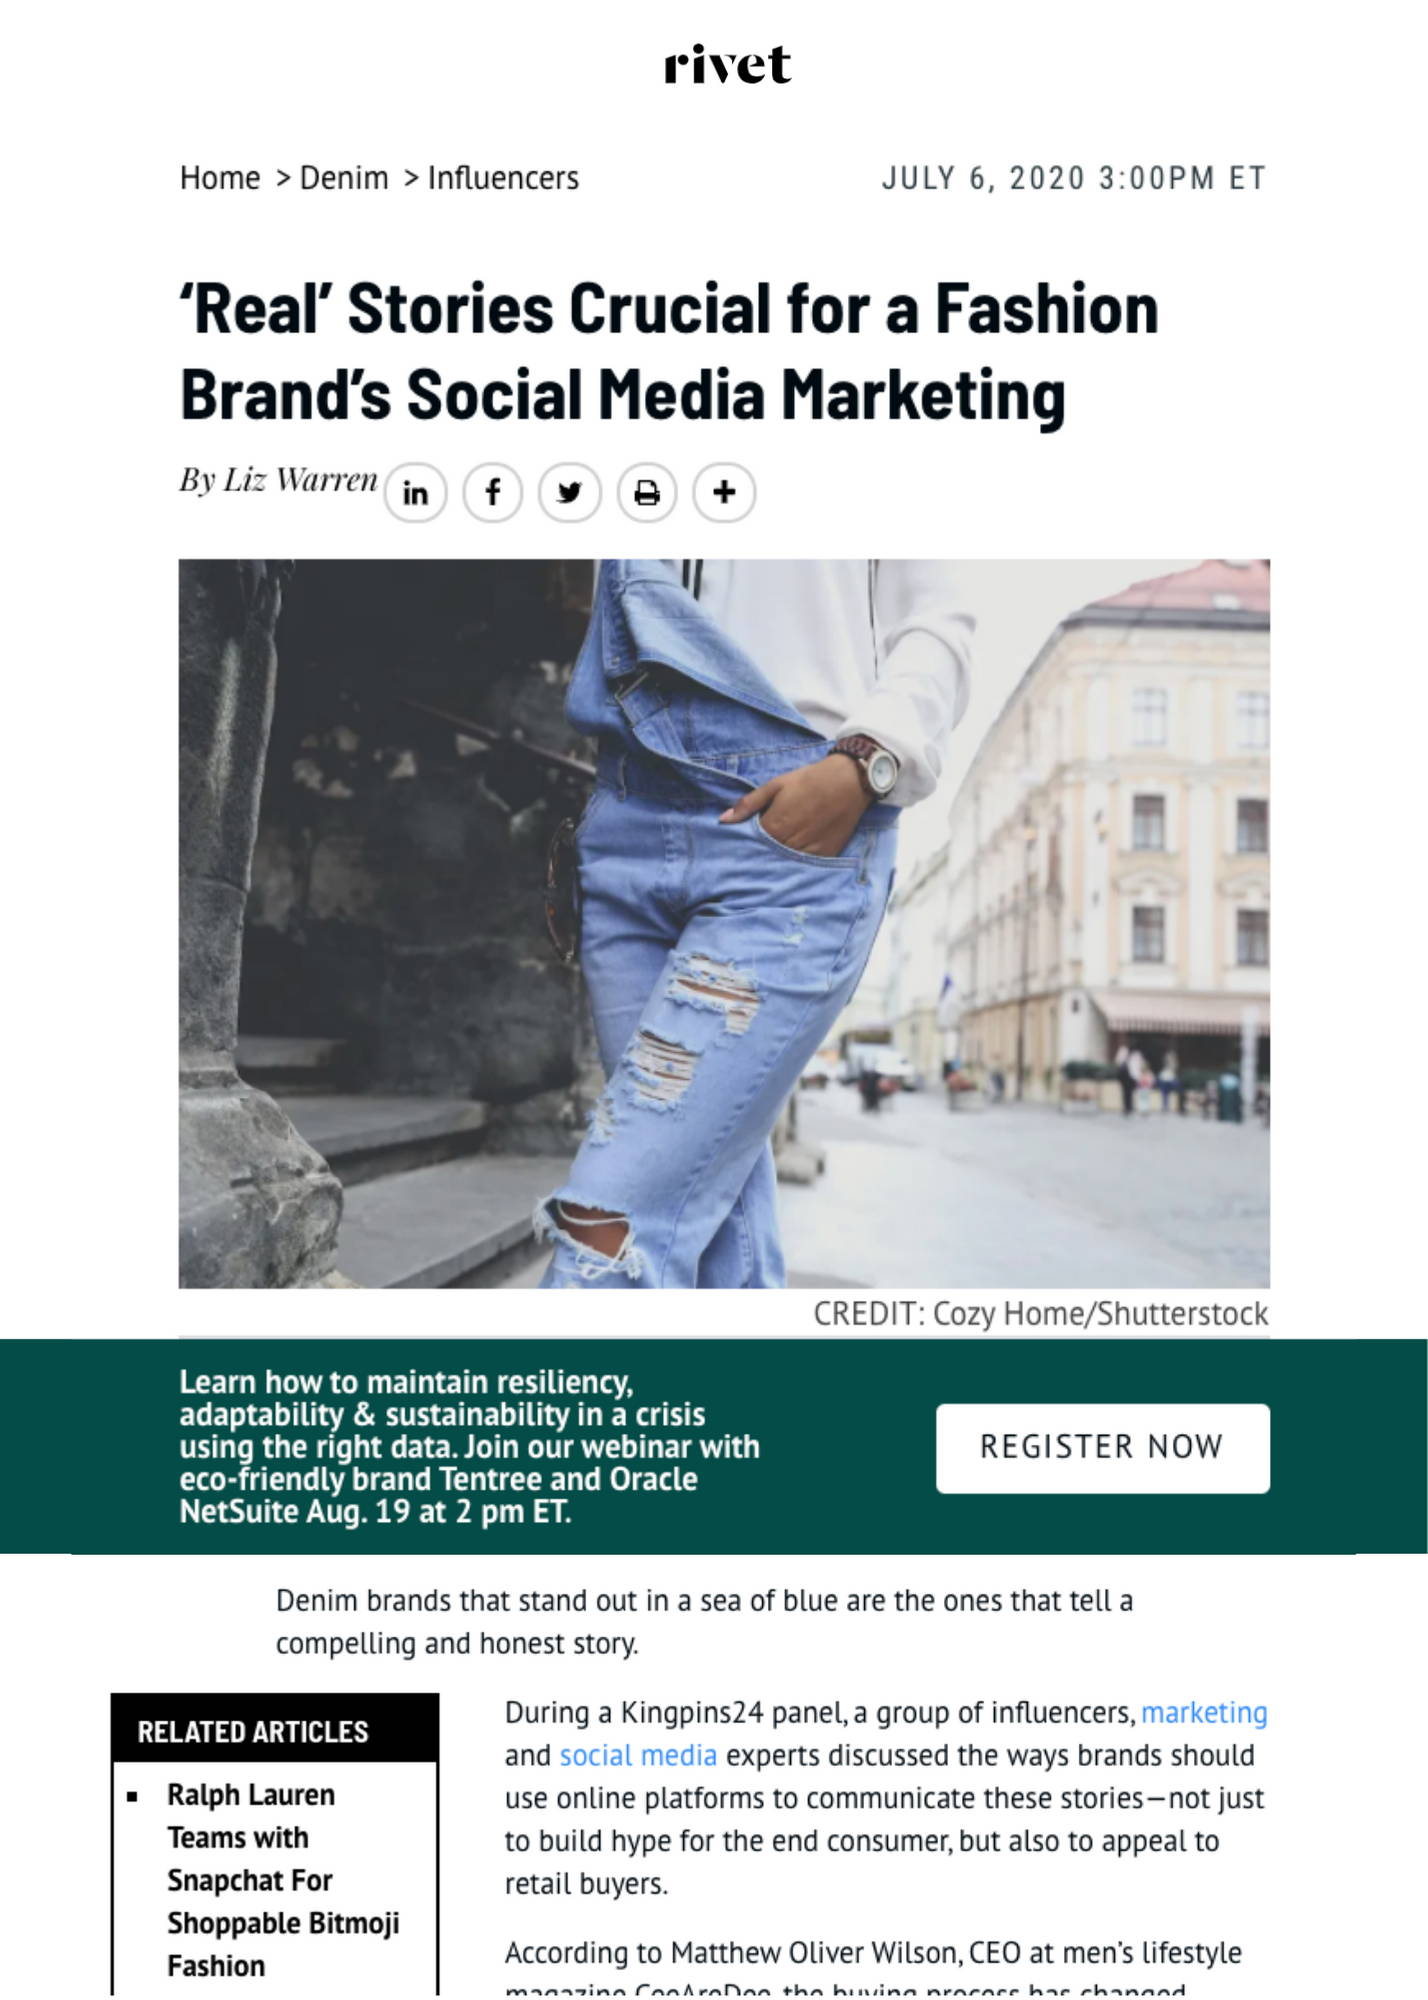 'Real' Stories Crucial for a Fashion Brand's Social Media Marketing Article